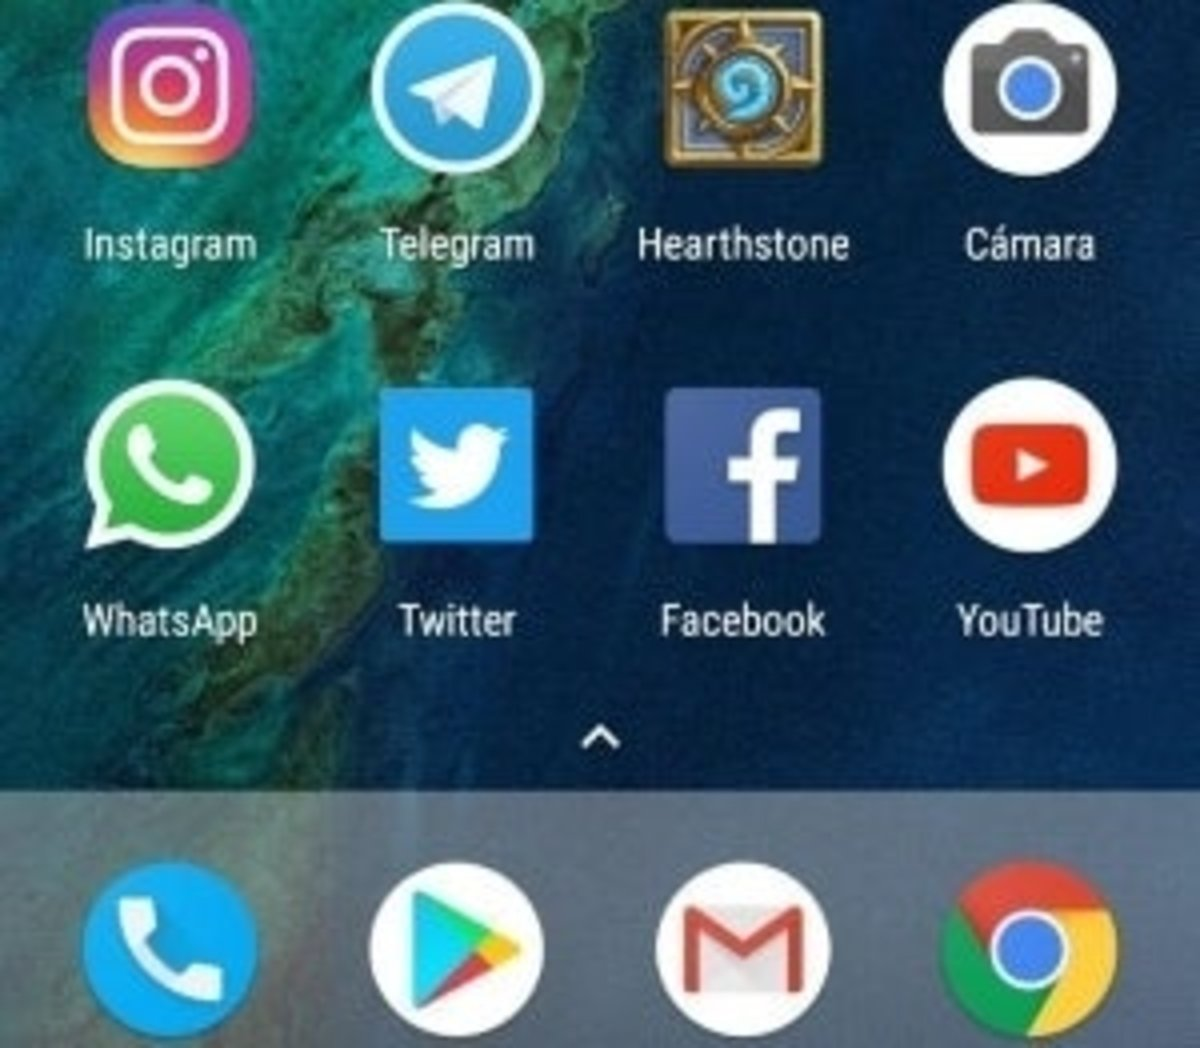 Android 7.1 Nougat, news: support for circular icons